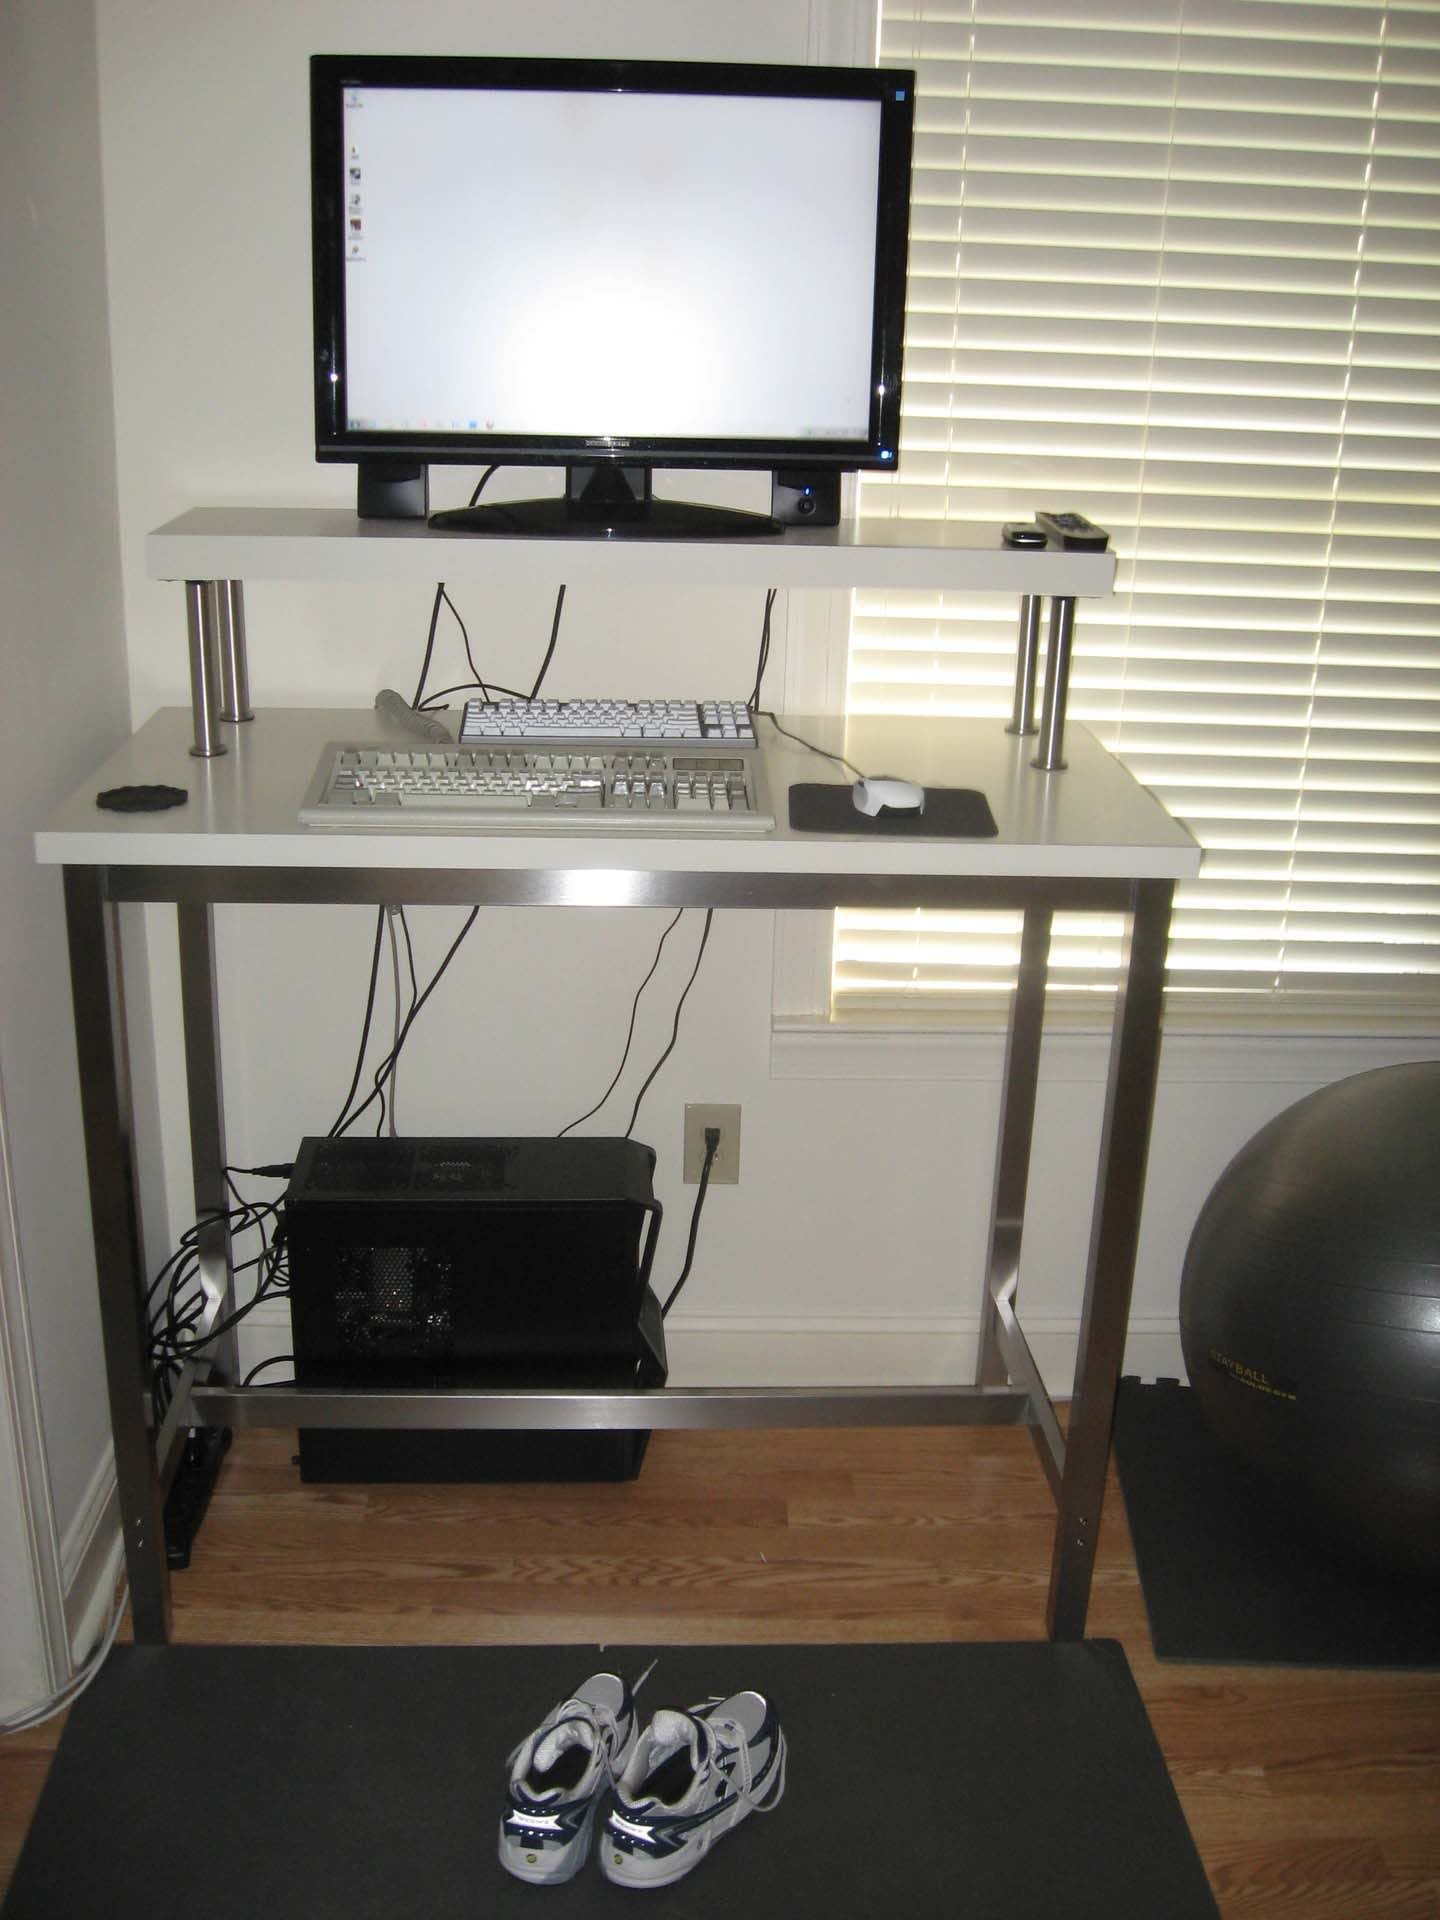 Monitor Stands From Ikea For Proper Monitor Positions